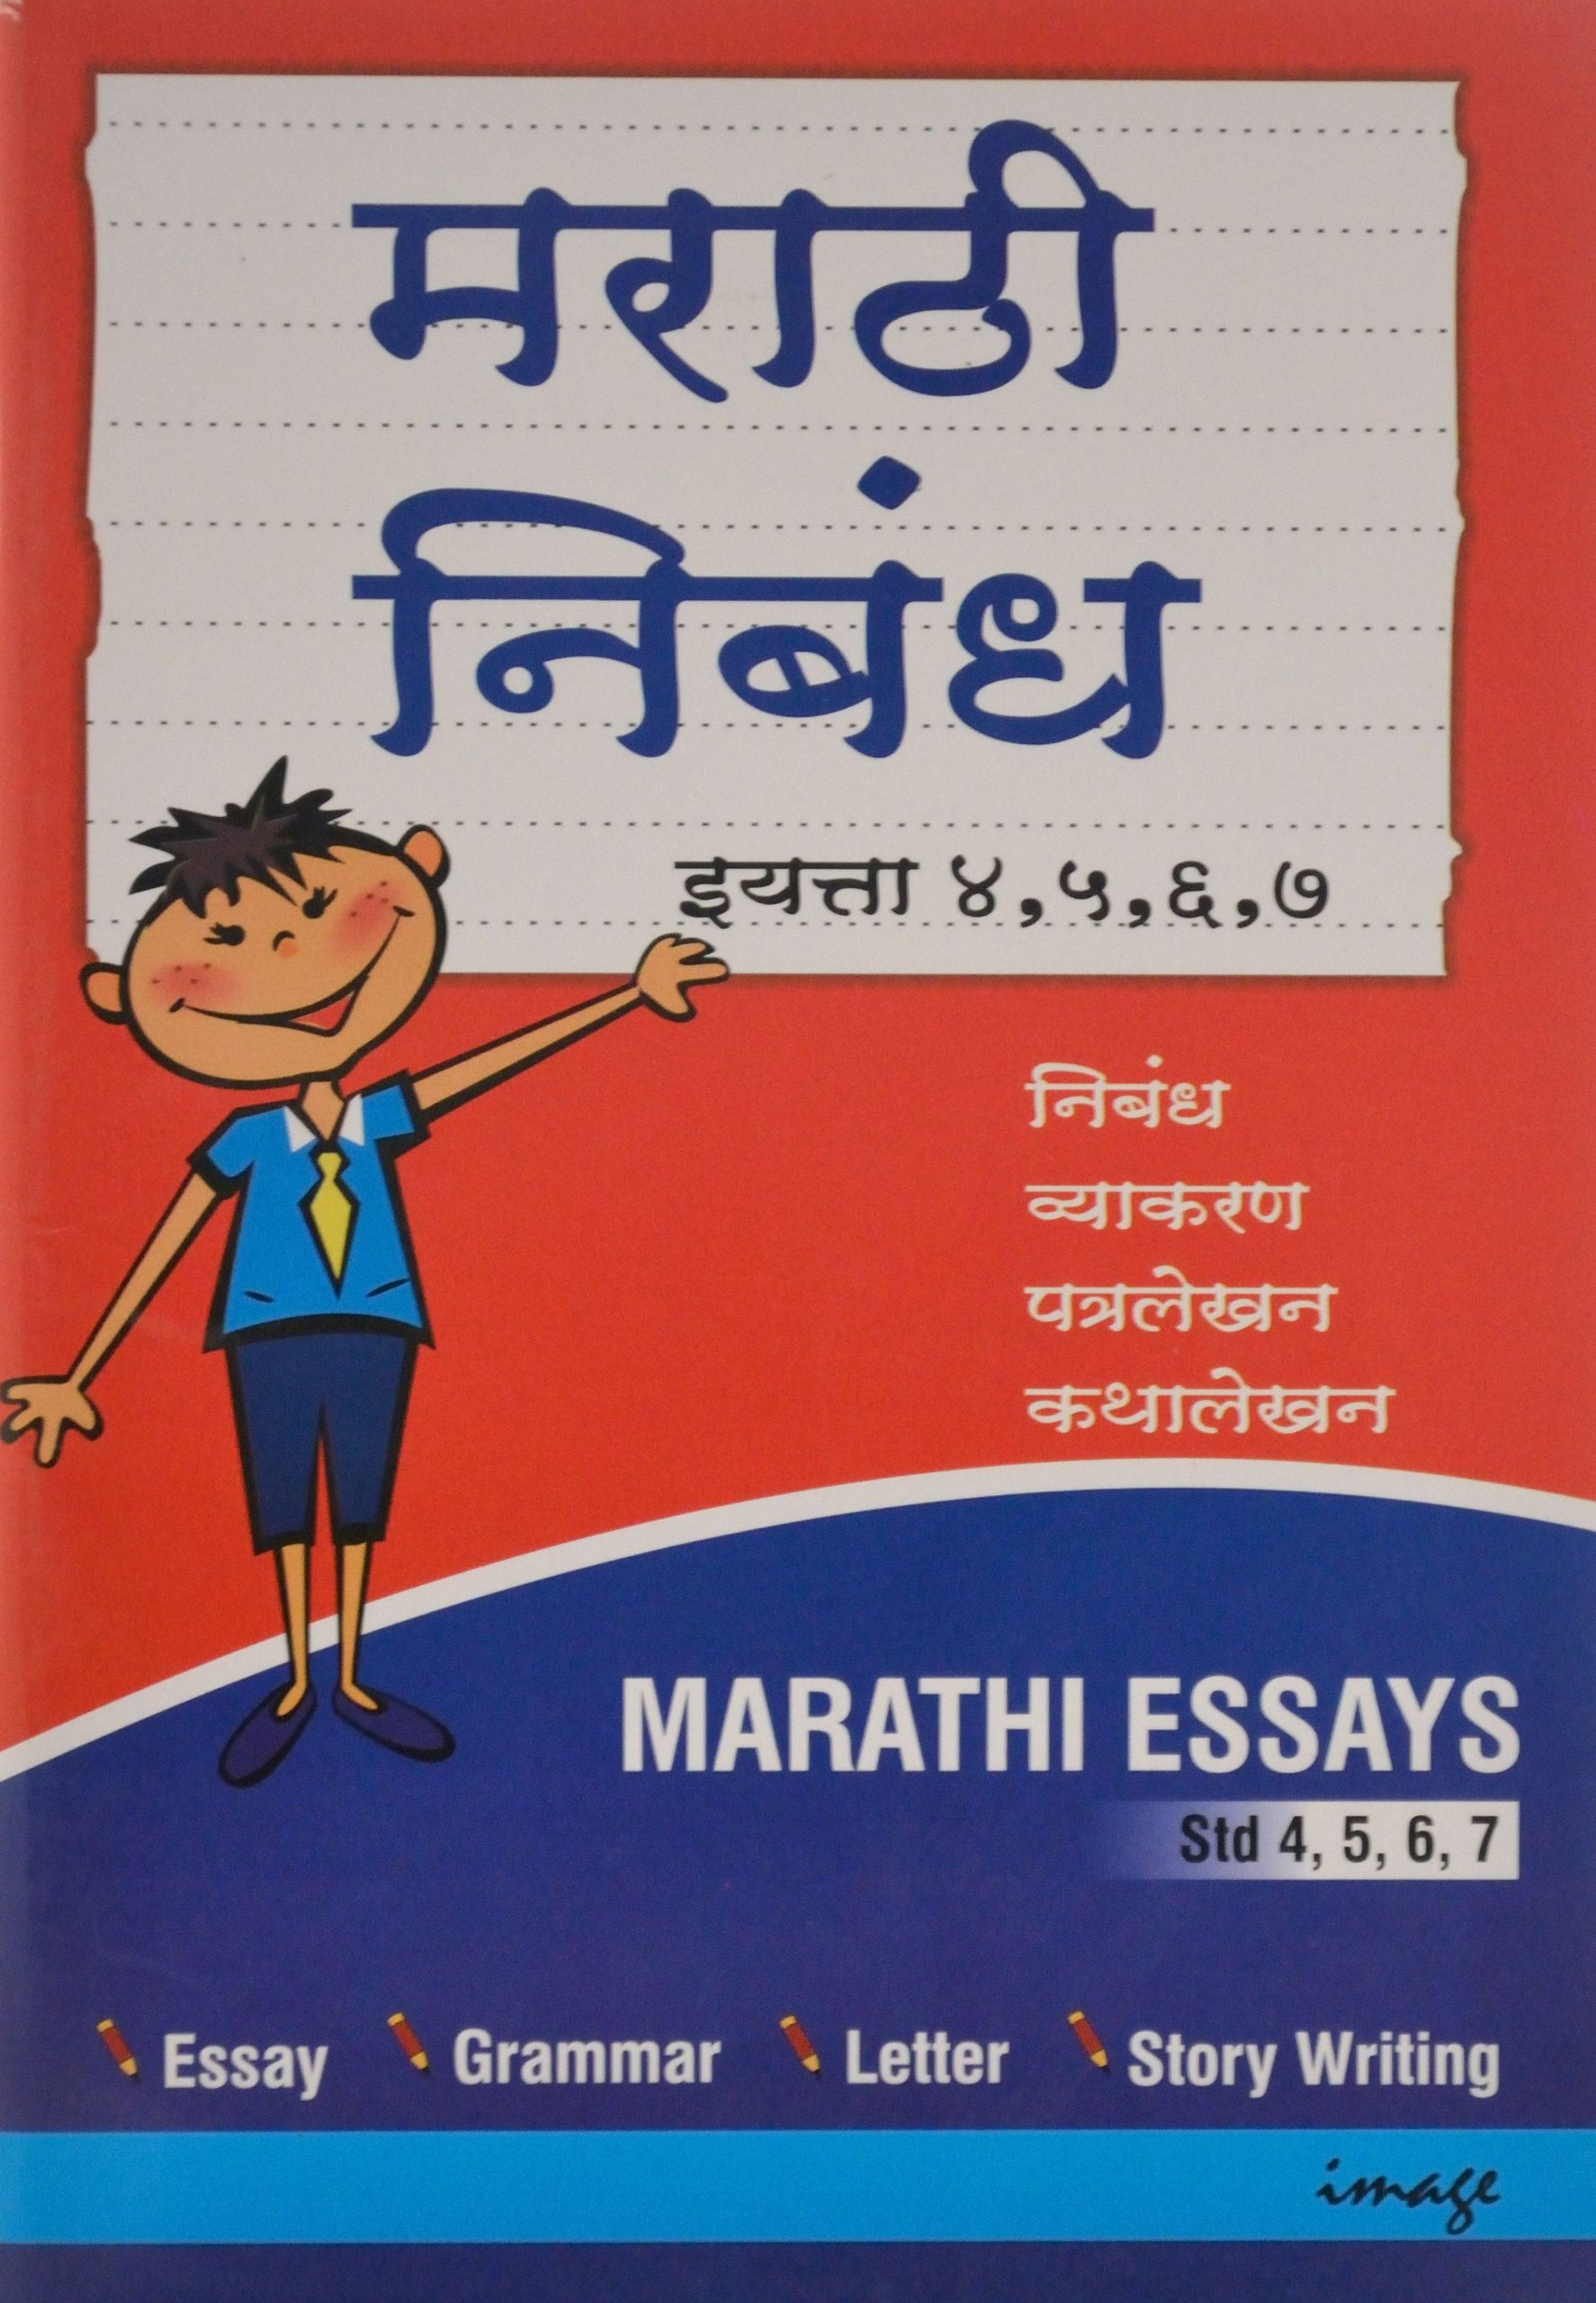 Marathi Essay Writing My School  Help Writing A Sentence also Health And Fitness Essays  Paraphrasing Online